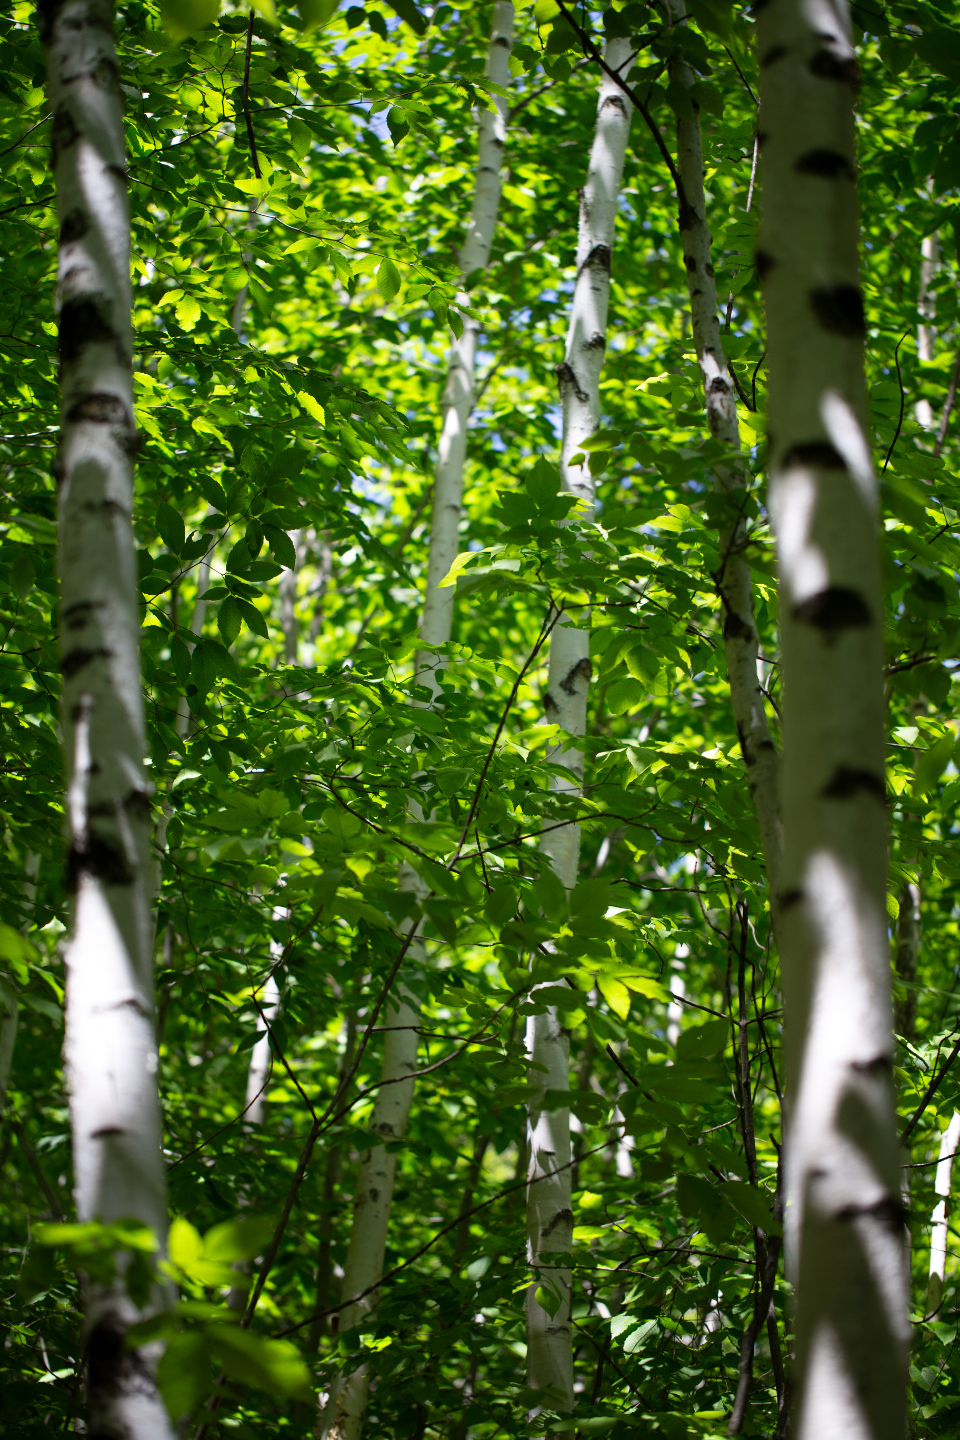 birch trees summer spring forest leaves growth green white bark nature tree scenery sunlight branches hiking